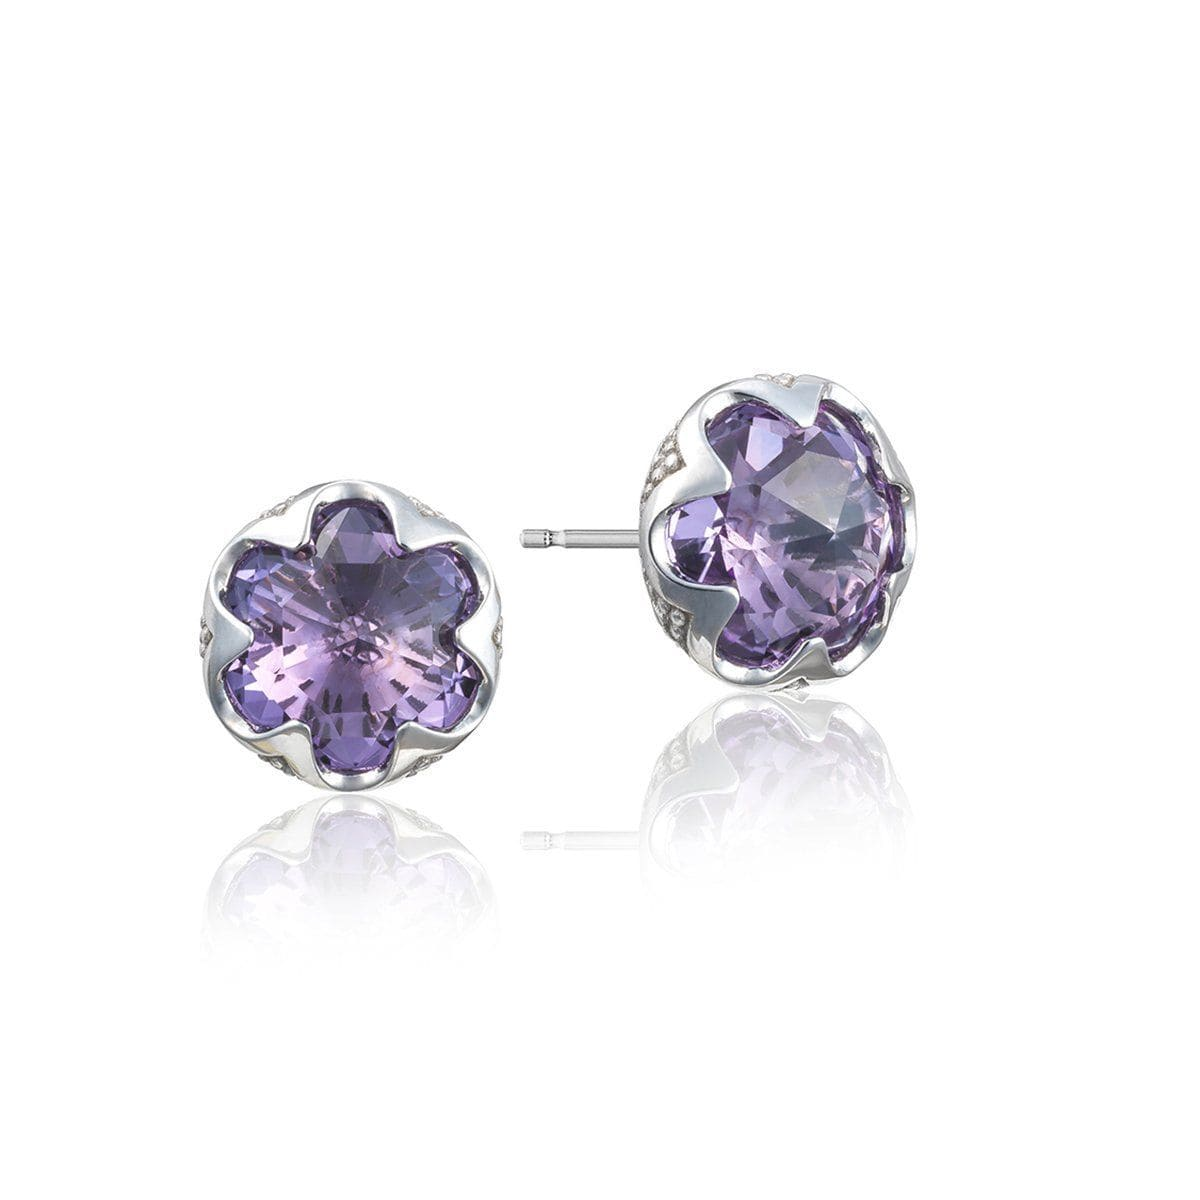 Silver 10MM Round Amethyst Stud Earrings - SE20801-Tacori-Renee Taylor Gallery